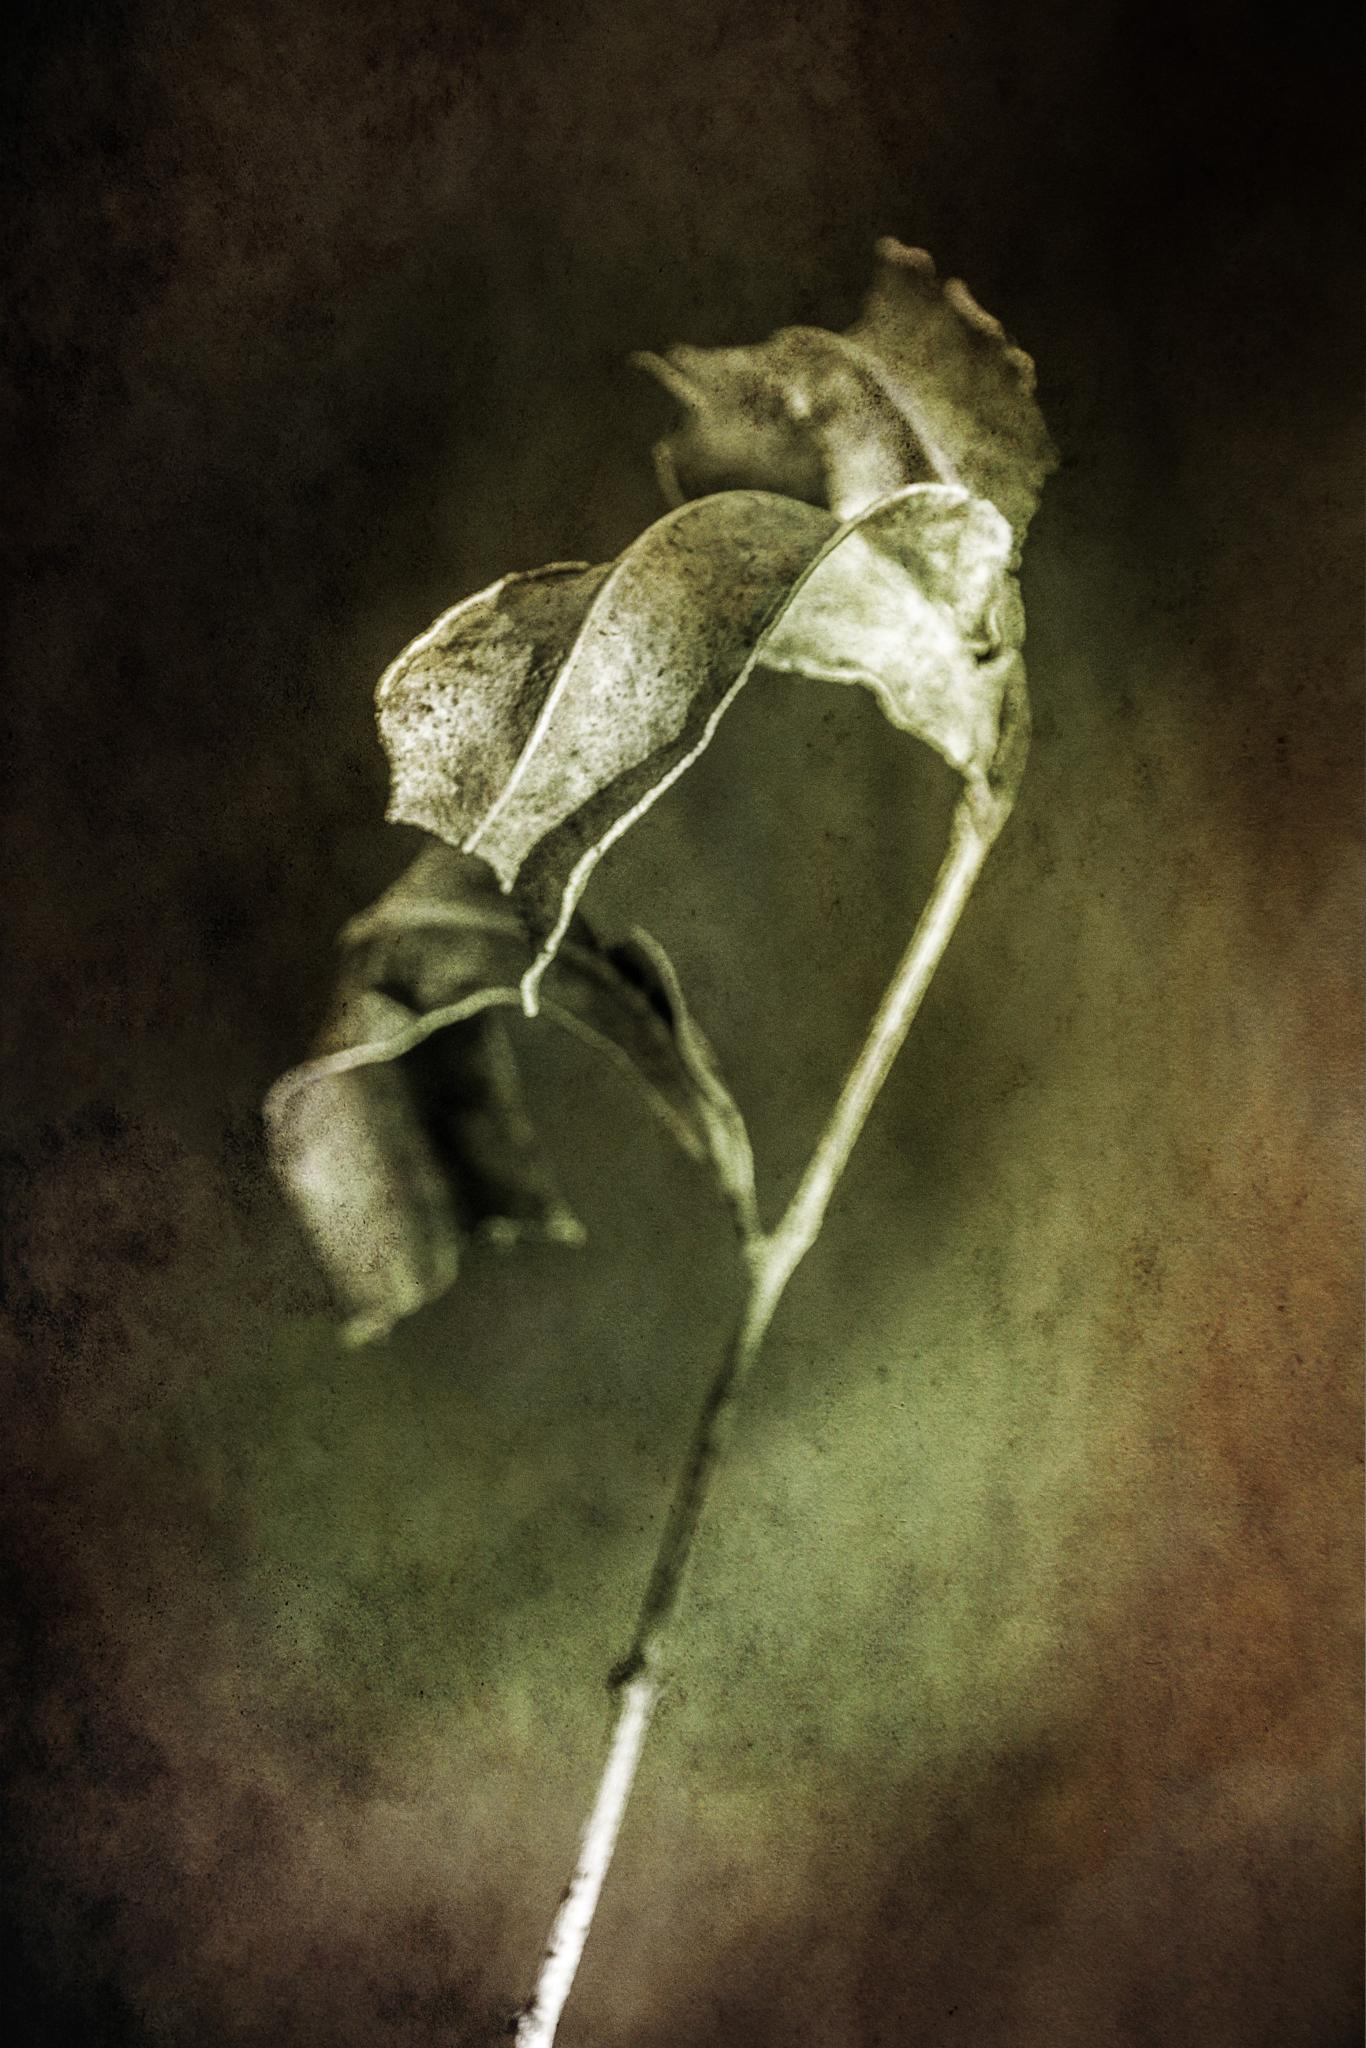 Dead leaves by Leanne Smithers